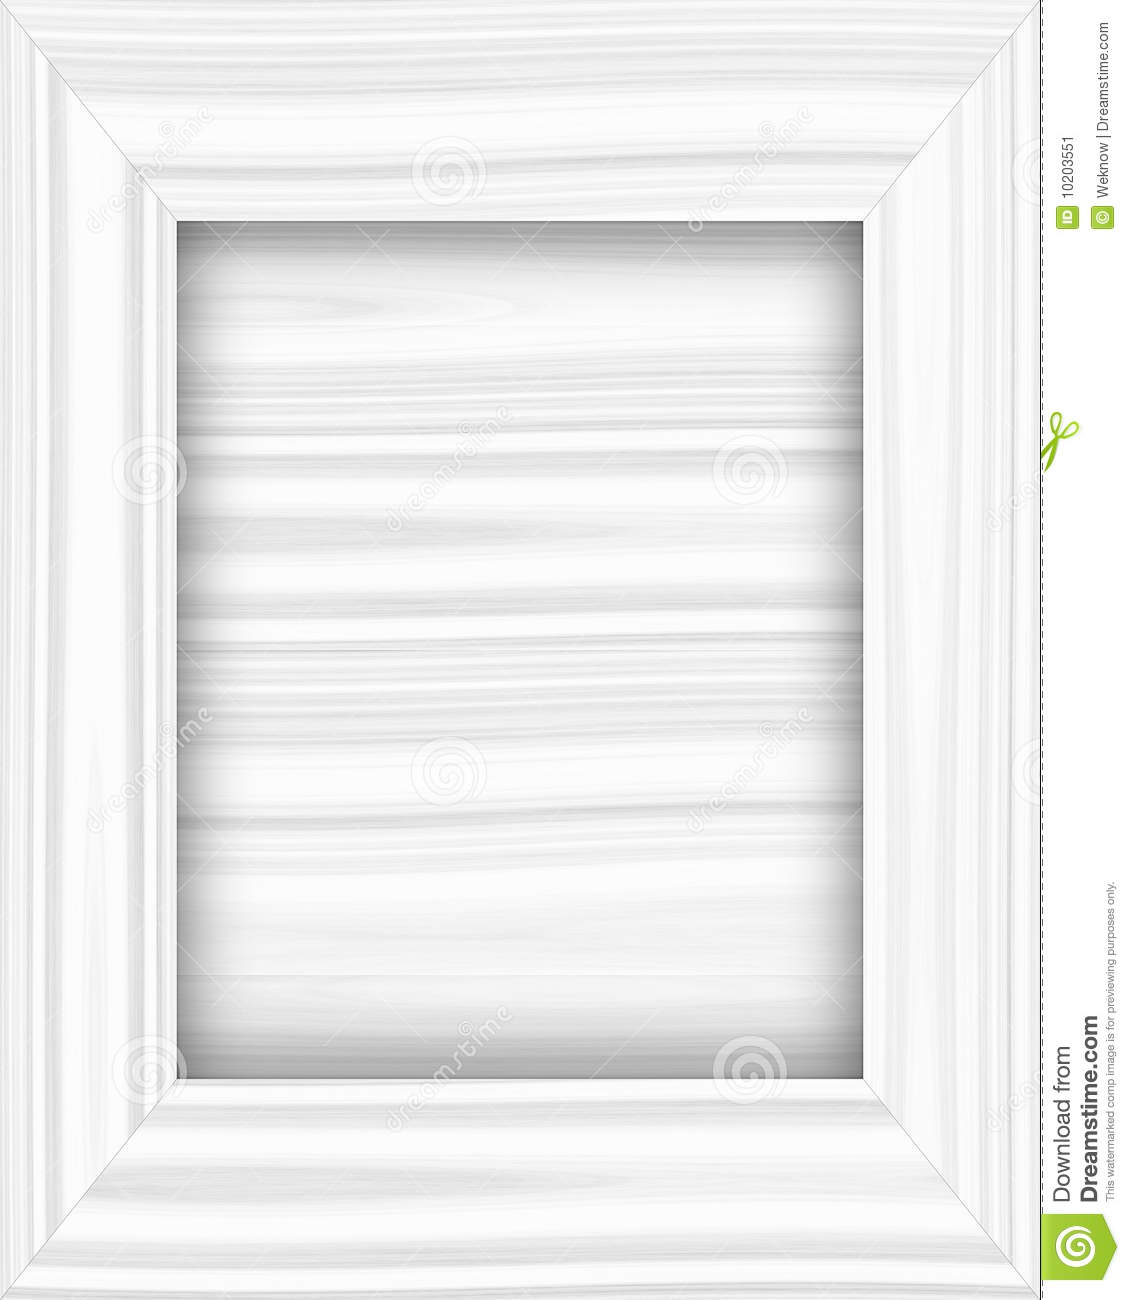 White Wood Frame : More similar stock images of ` White wooden frame `